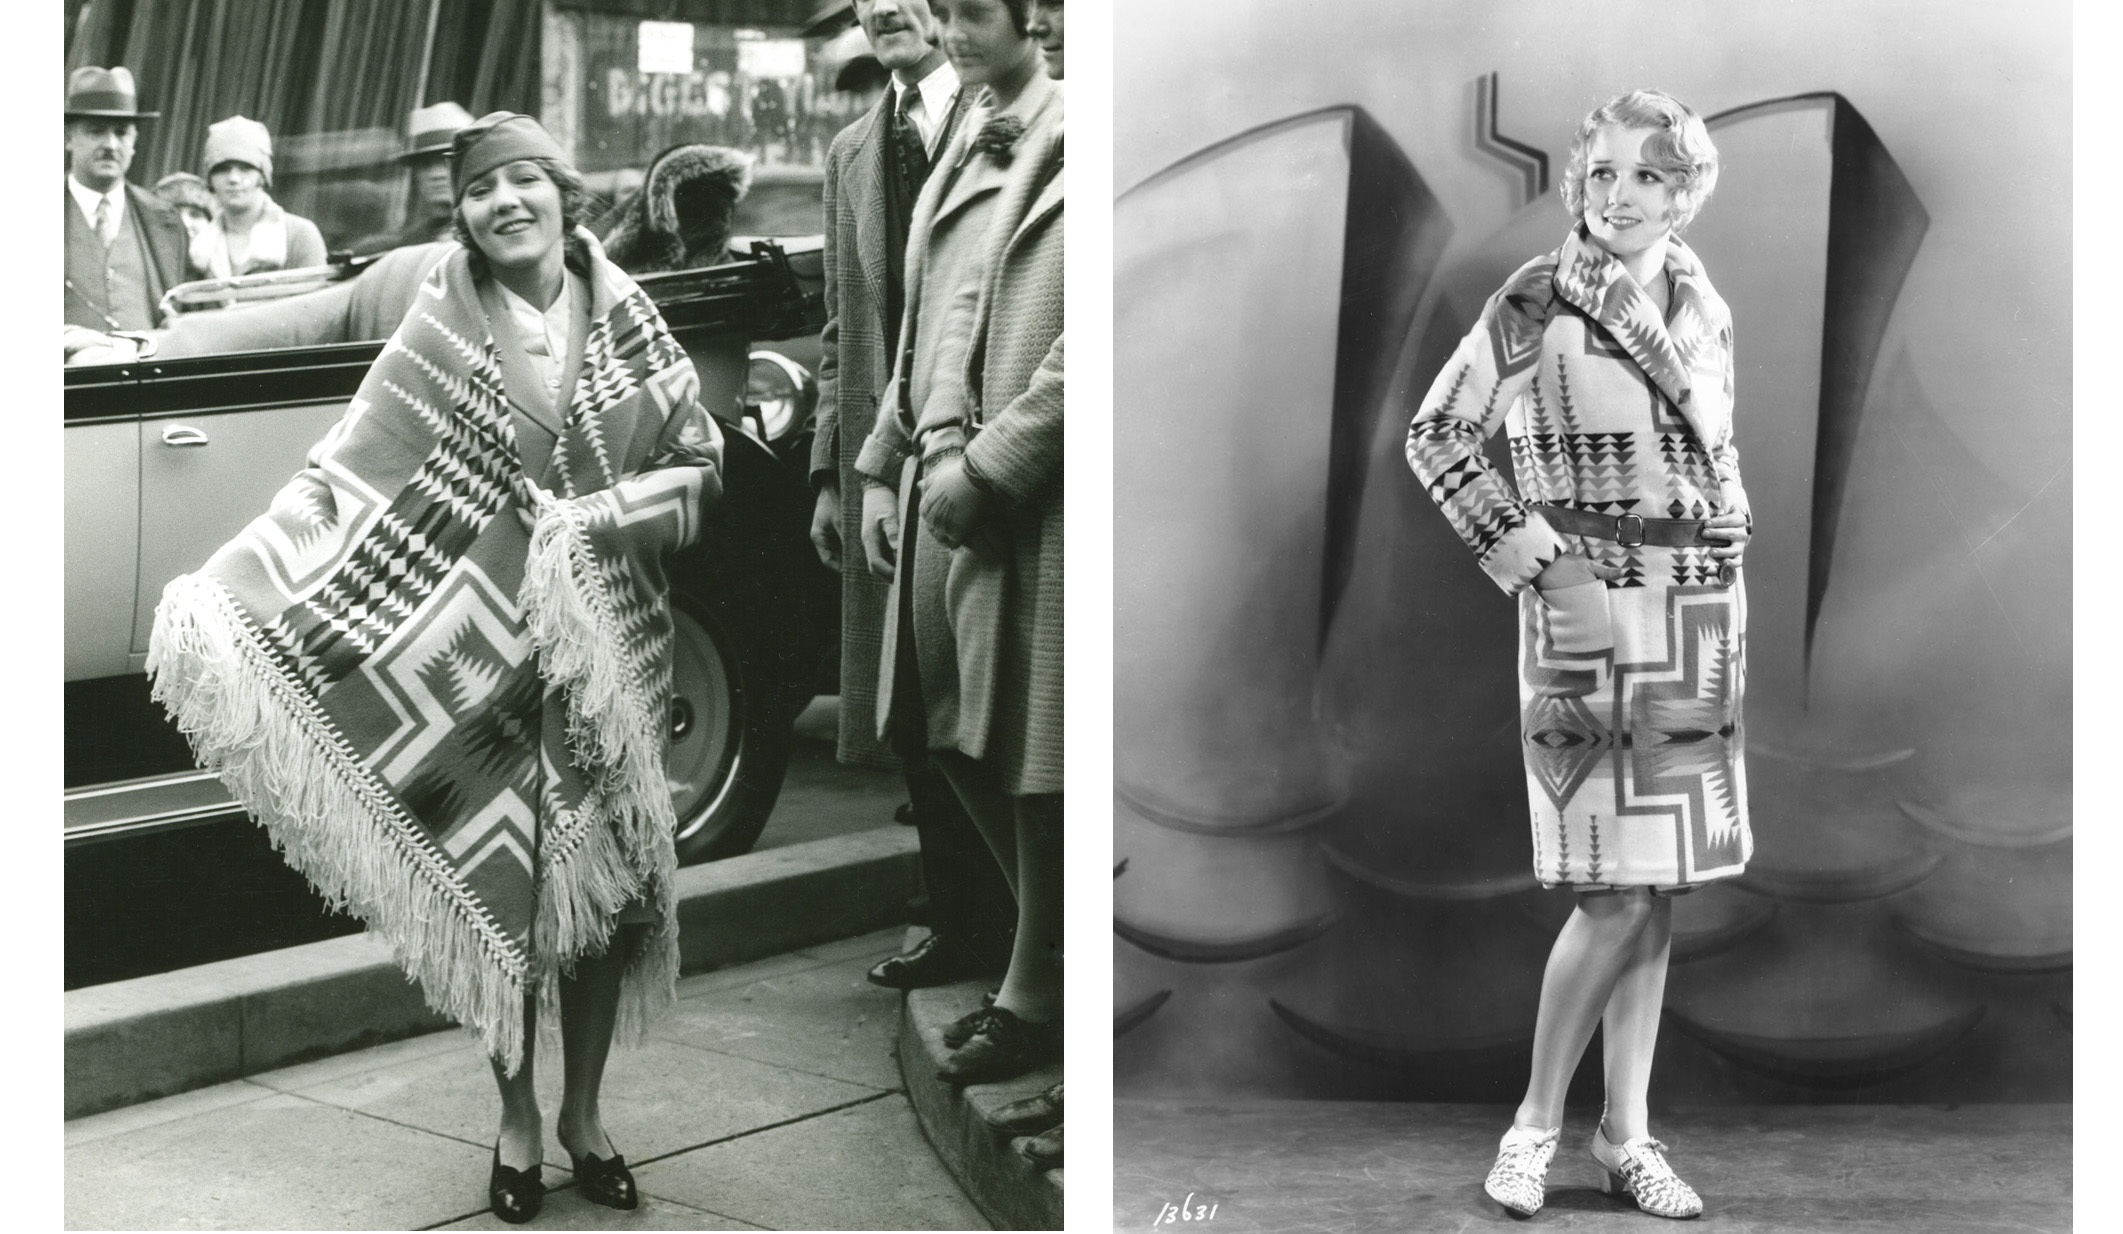 Side by side photos from the 1920s of Mary Pickford and Anita Page, both in Pendleton Harding blanket garments.